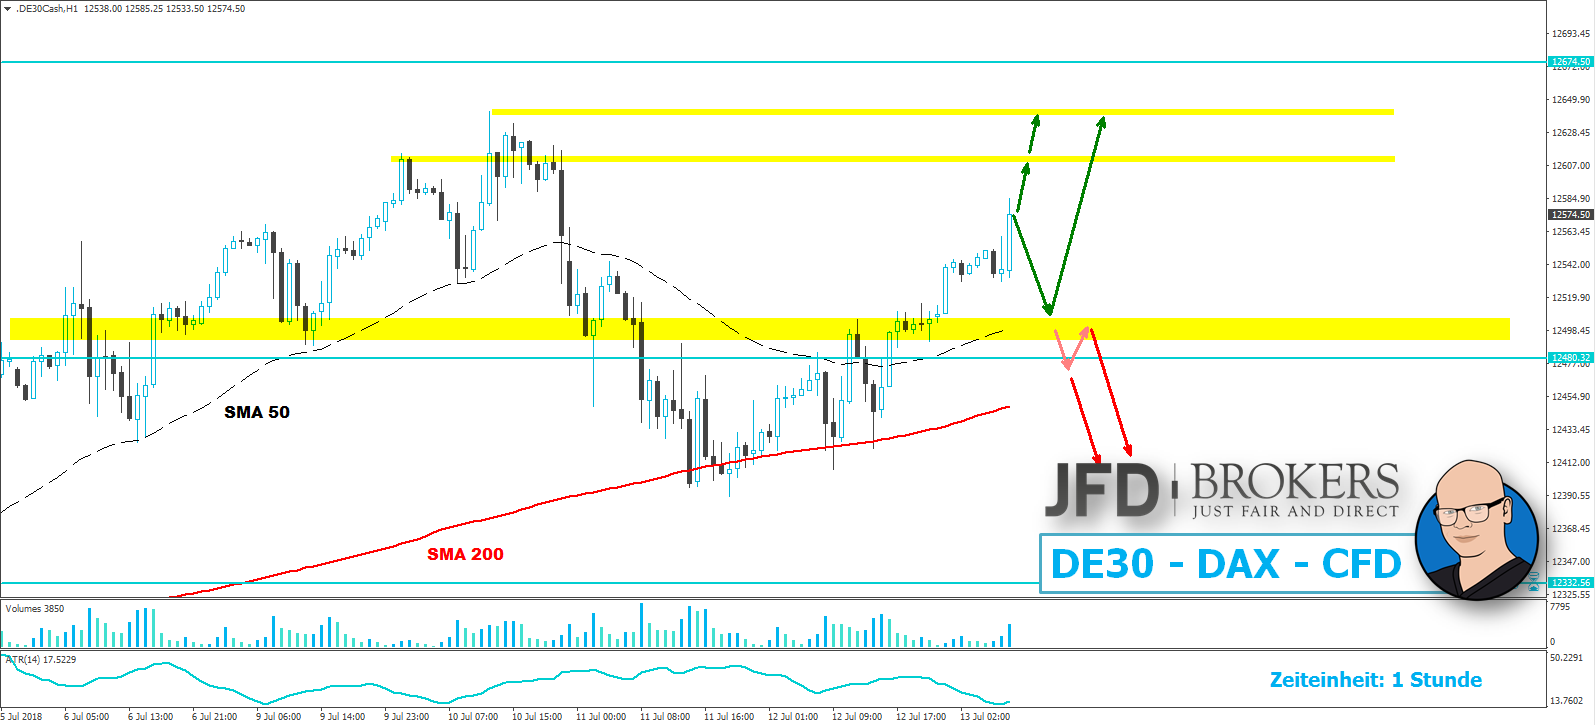 dax-13072018-jfd-brokers-analyse-marcus-klebe-daytrading.png